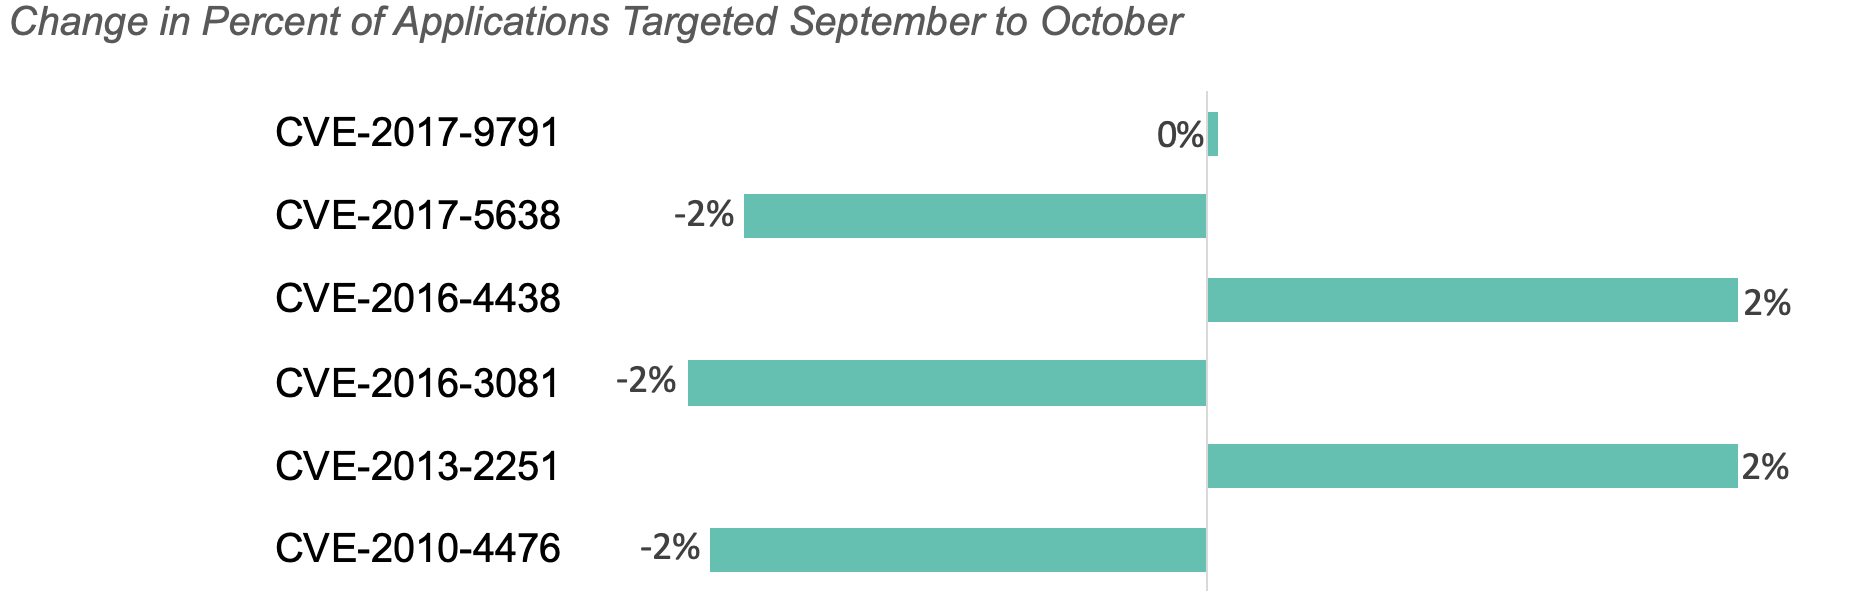 Change in percent of application targeting Sept to Oct